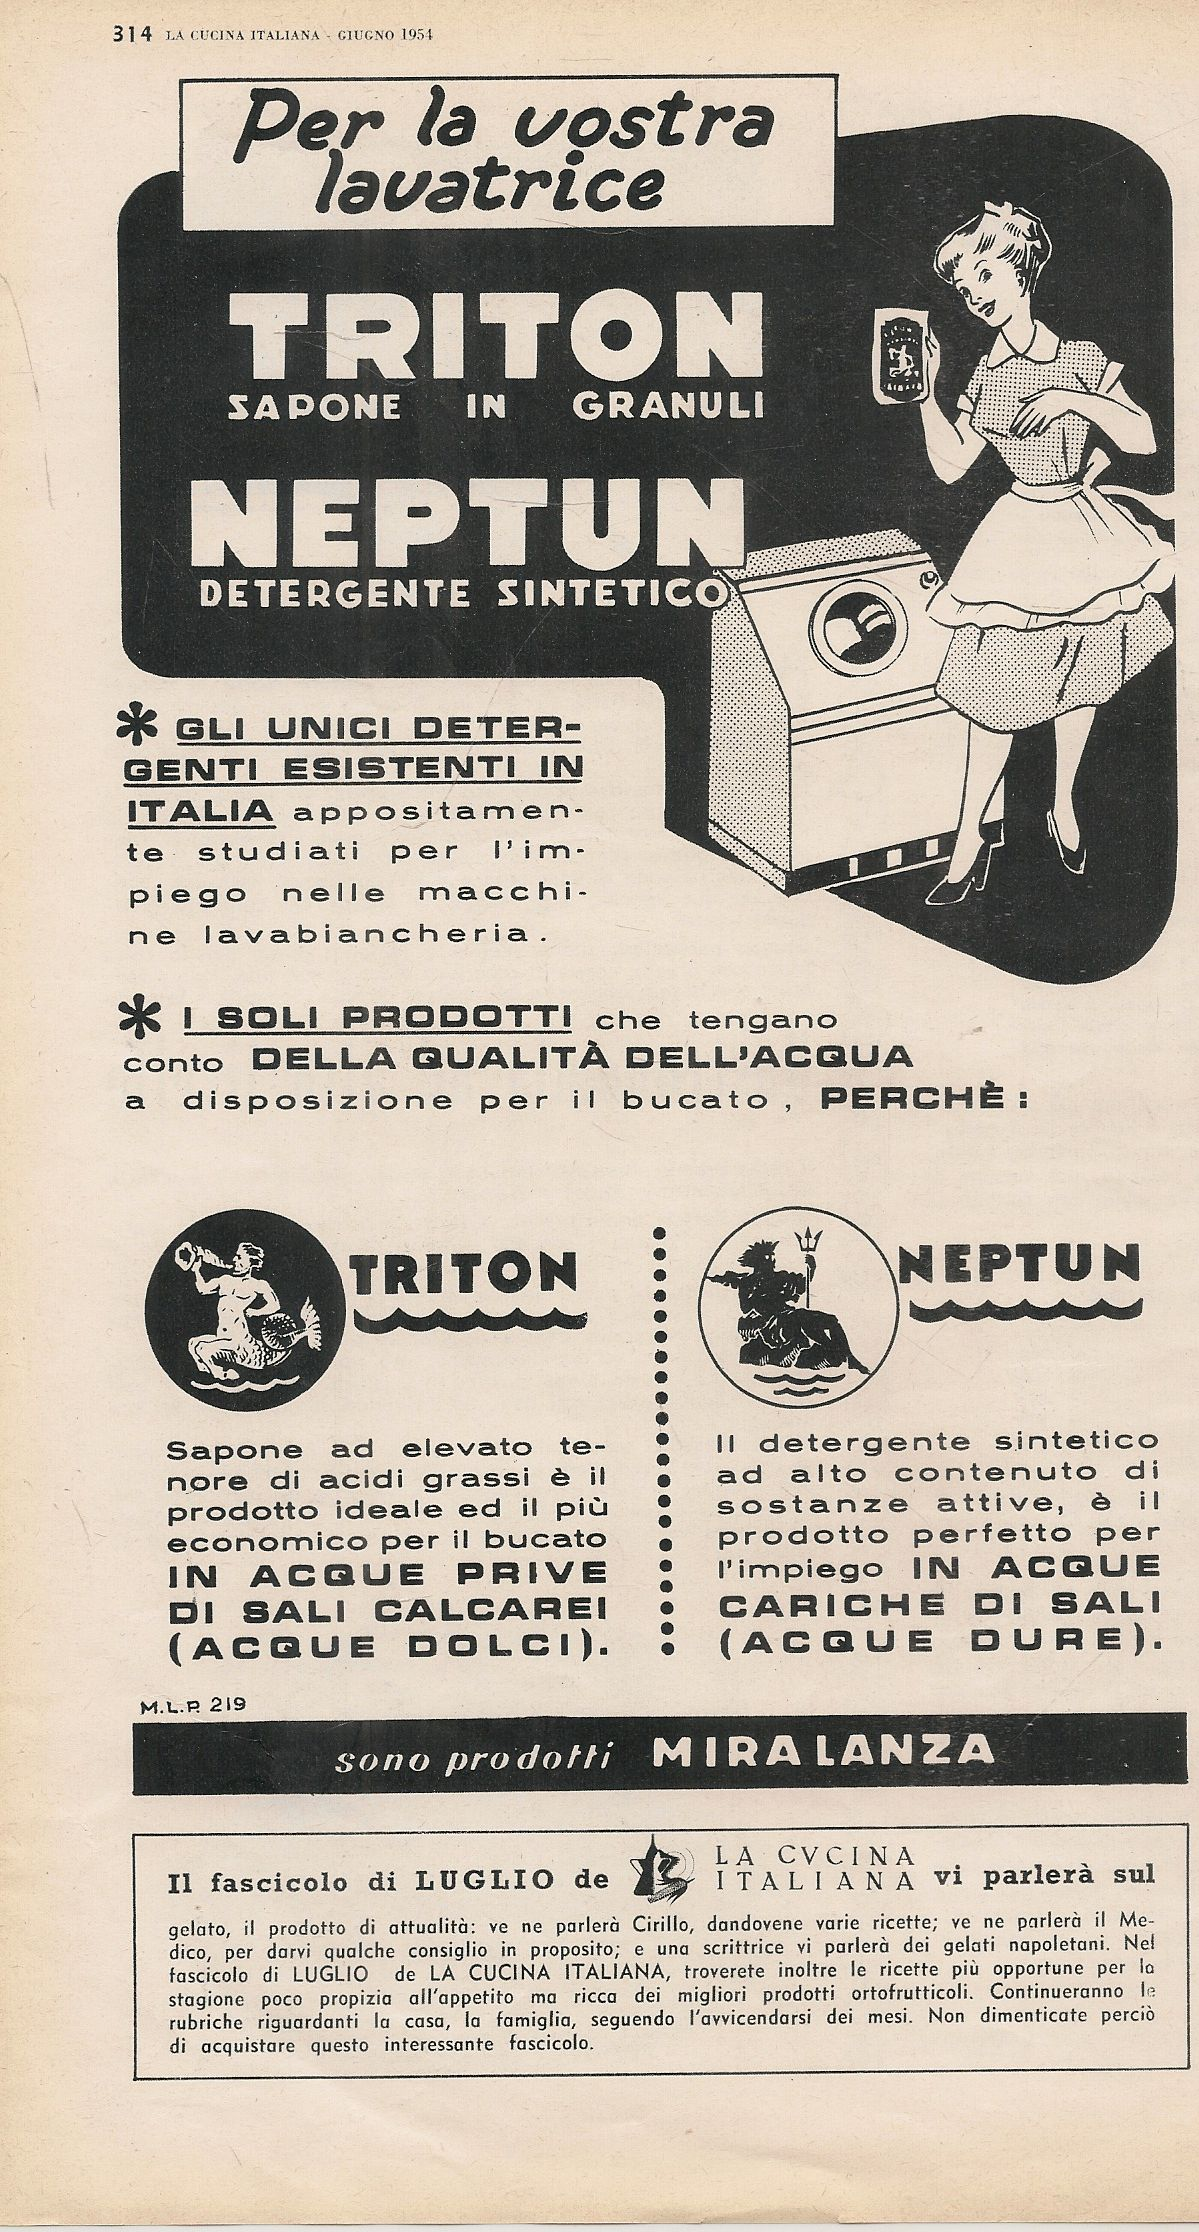 TRITON SAPONE IN GRANULI NEPTUN DETERGENTE - MIRALANZA - ADVERTISING